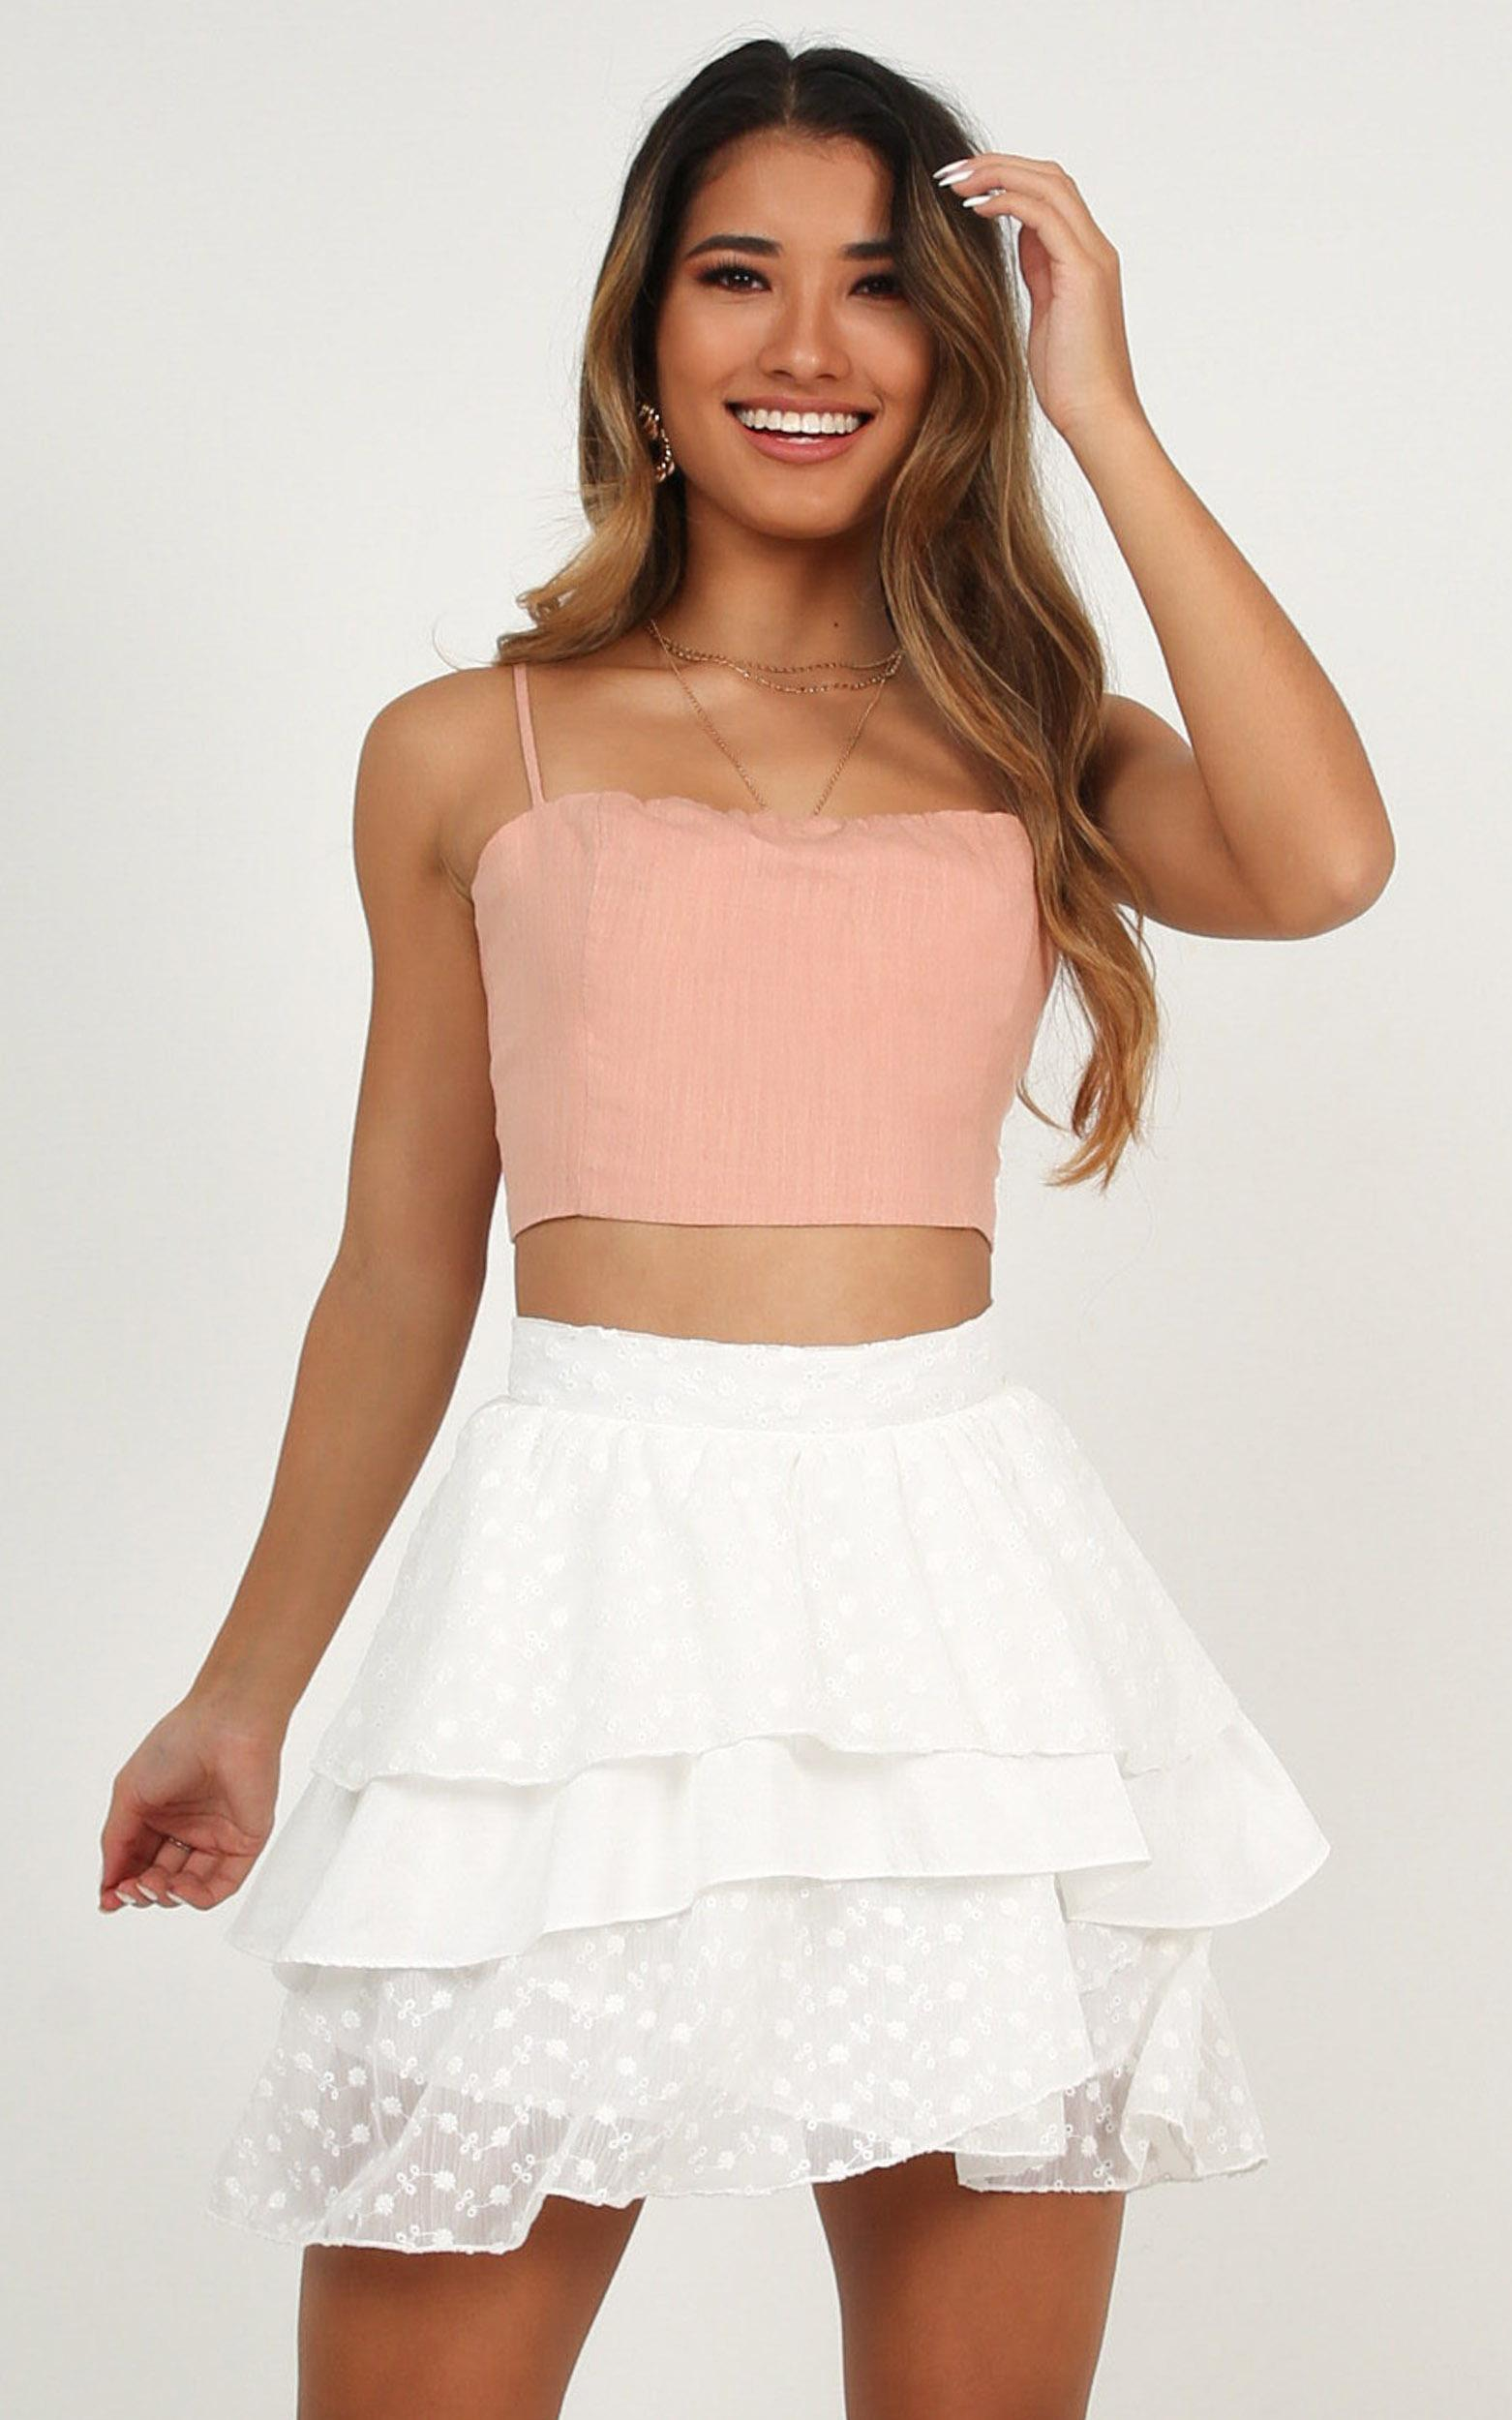 Ruffle and hustle skirt in white - 20 (XXXXL), White, hi-res image number null